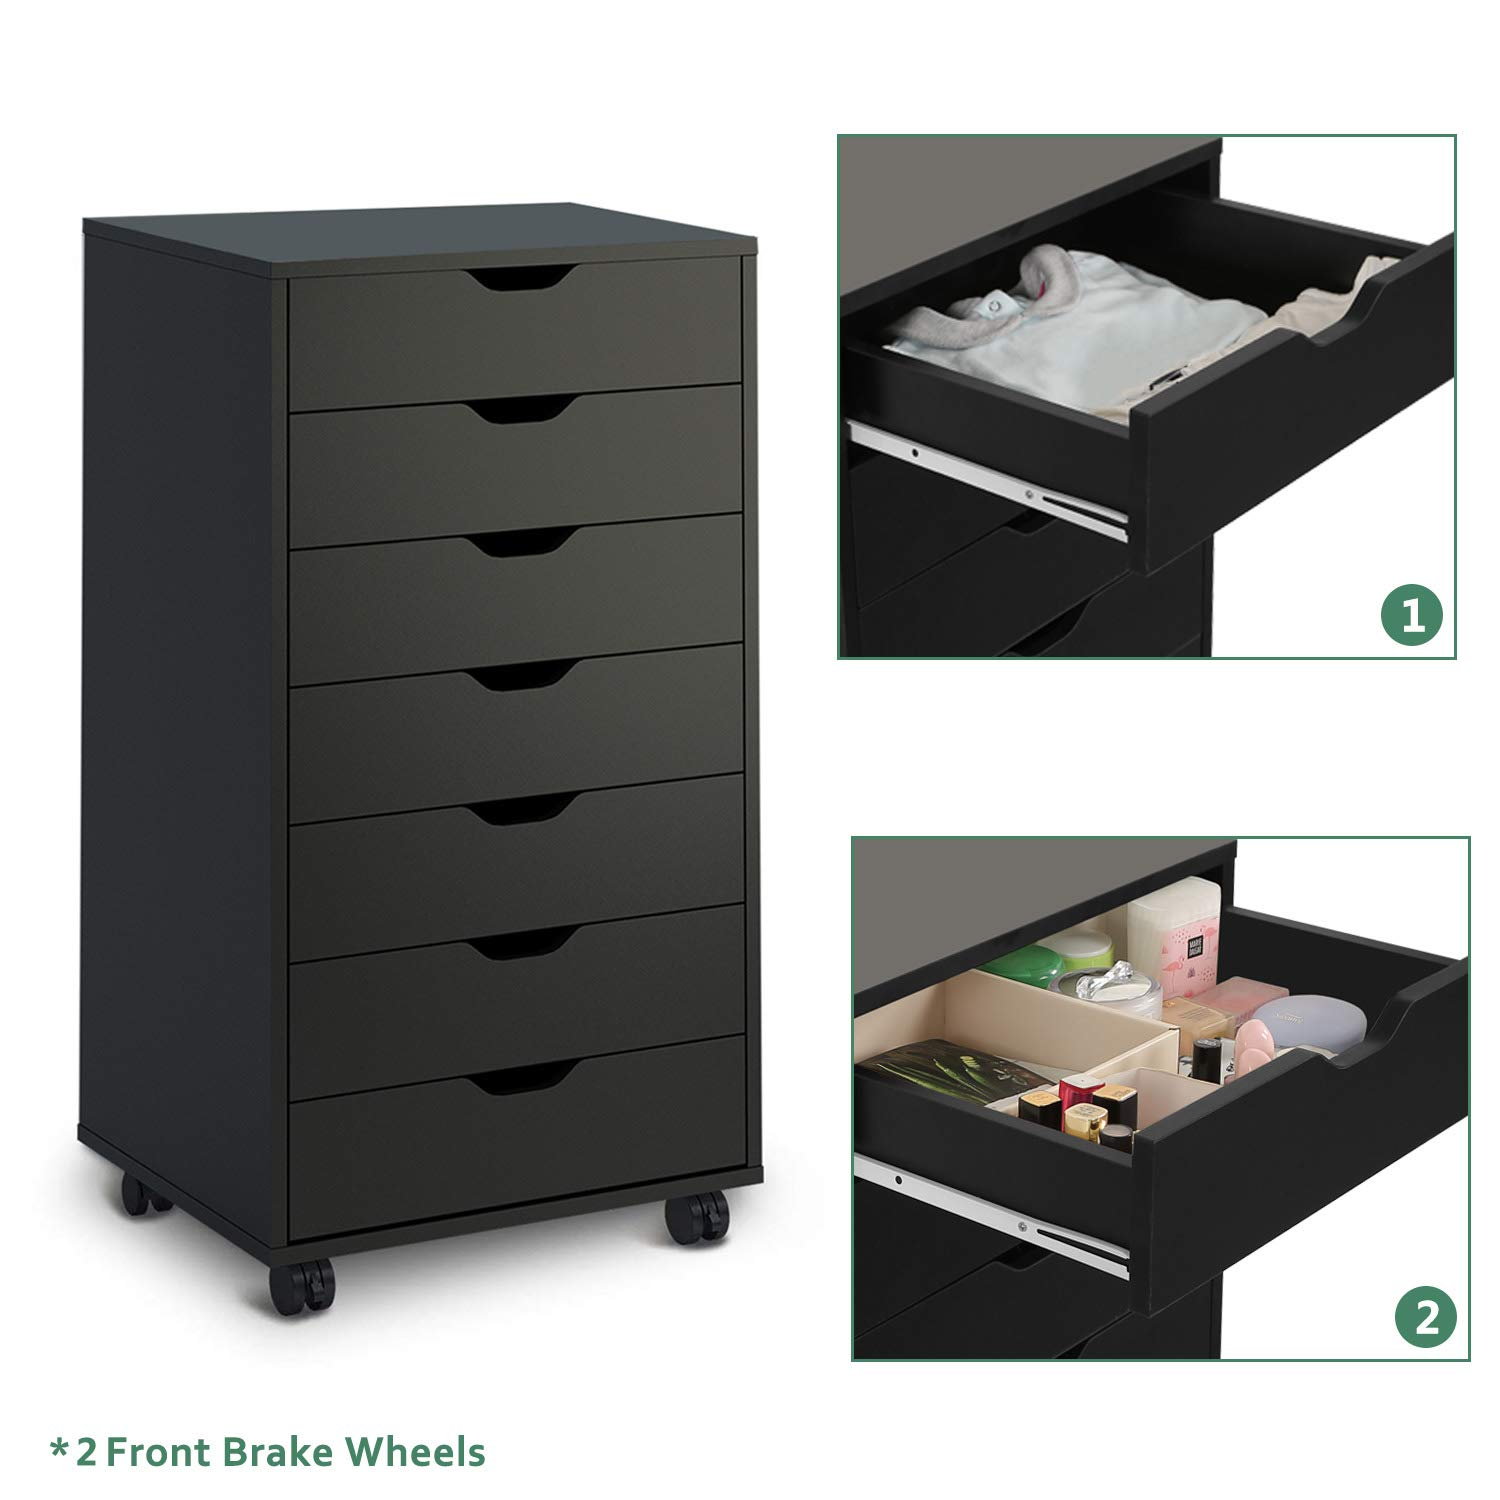 Classic Style-Black DEVAISE 7 Drawers Chest Storage Dresser Cabinet with Removable Wheels